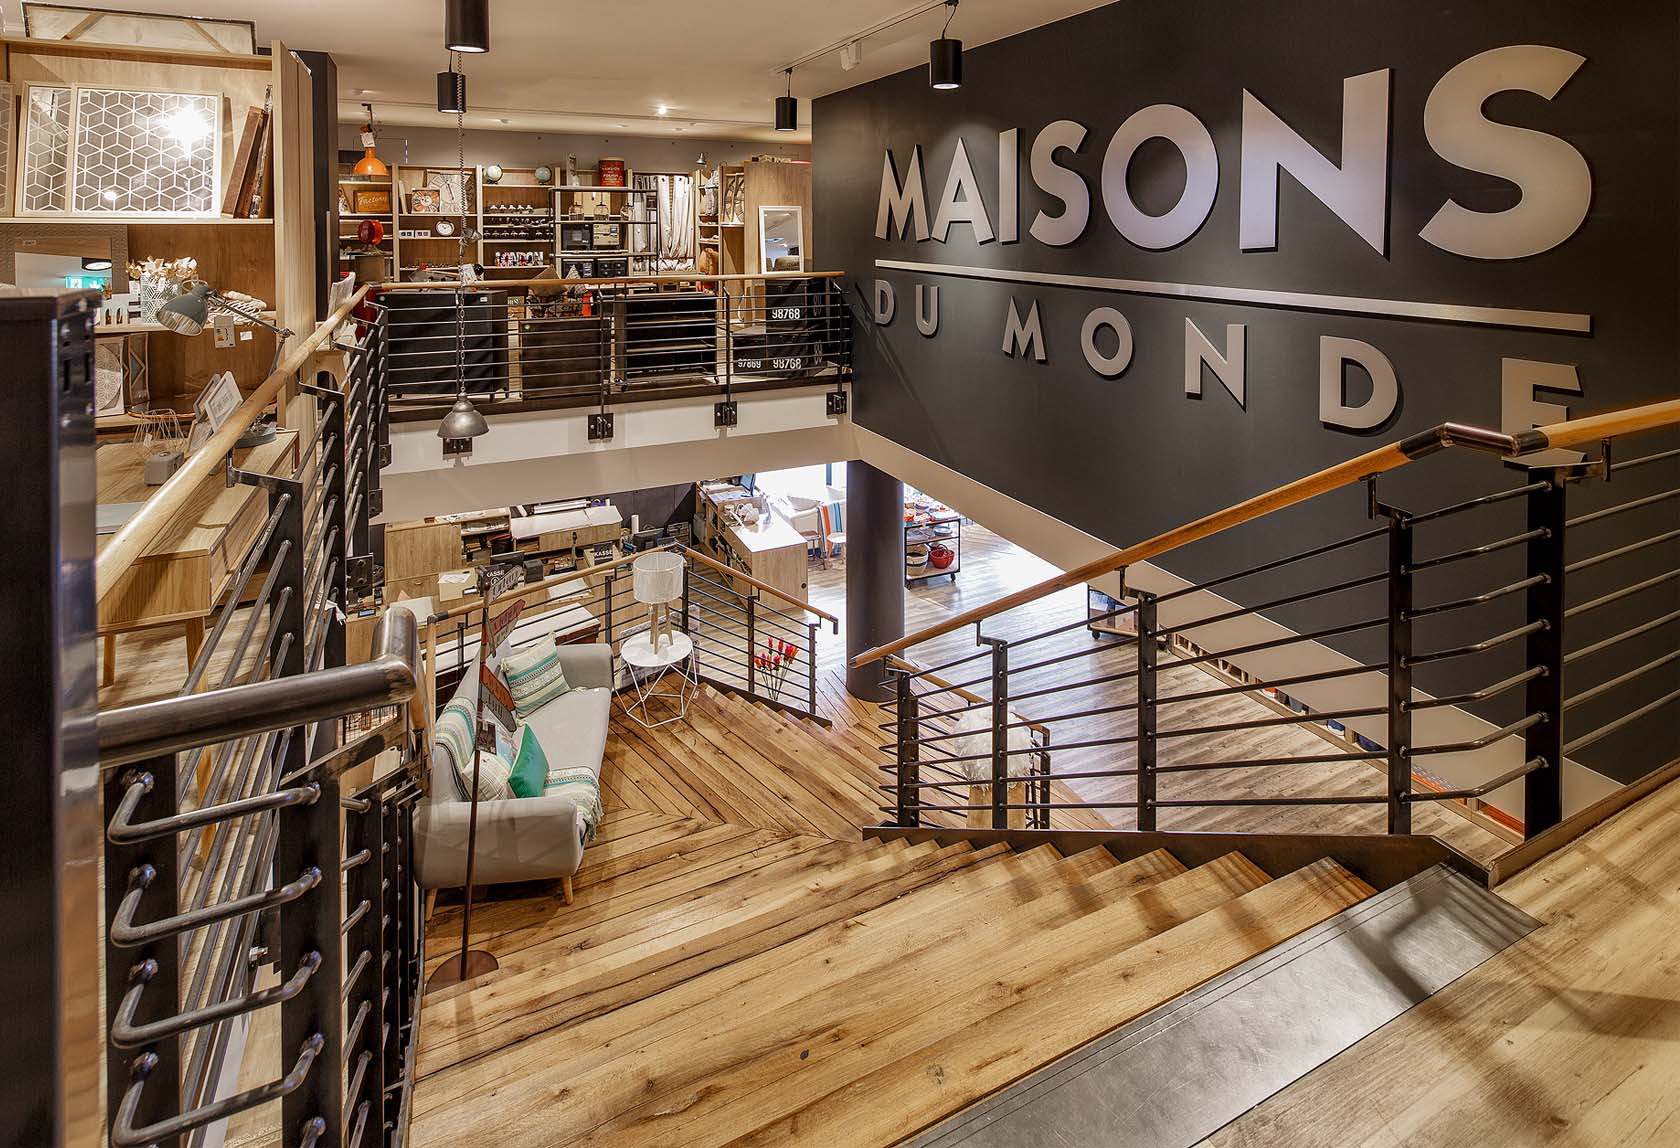 maisons du monde store in dortmund germany sam l mau architecture. Black Bedroom Furniture Sets. Home Design Ideas